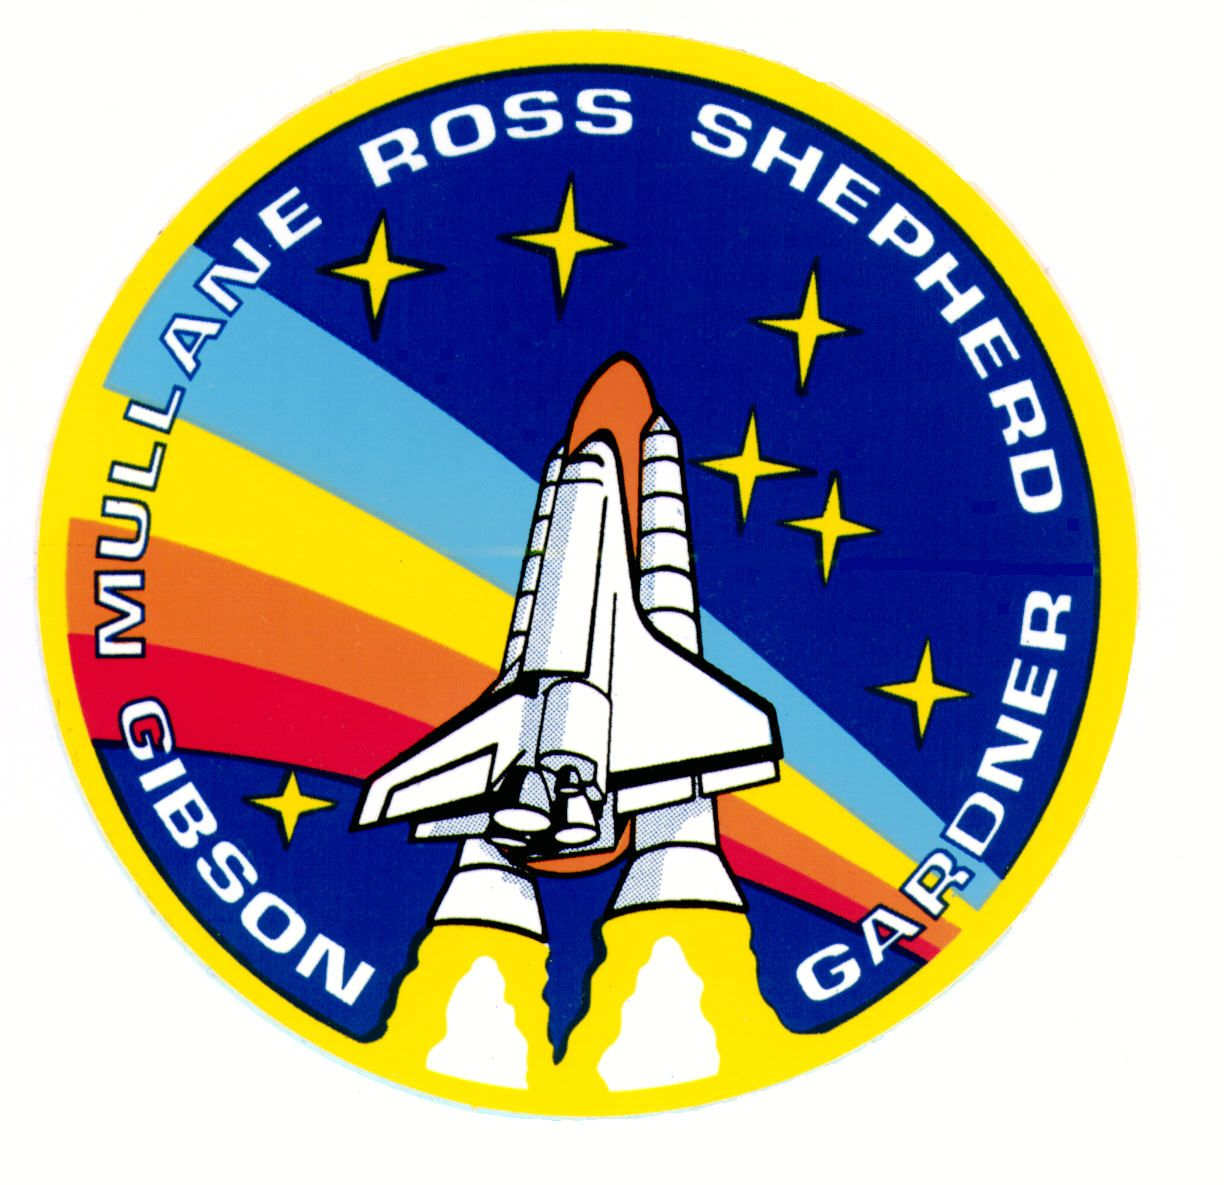 Pin by John Shepherd on Mission Patches Space shuttle